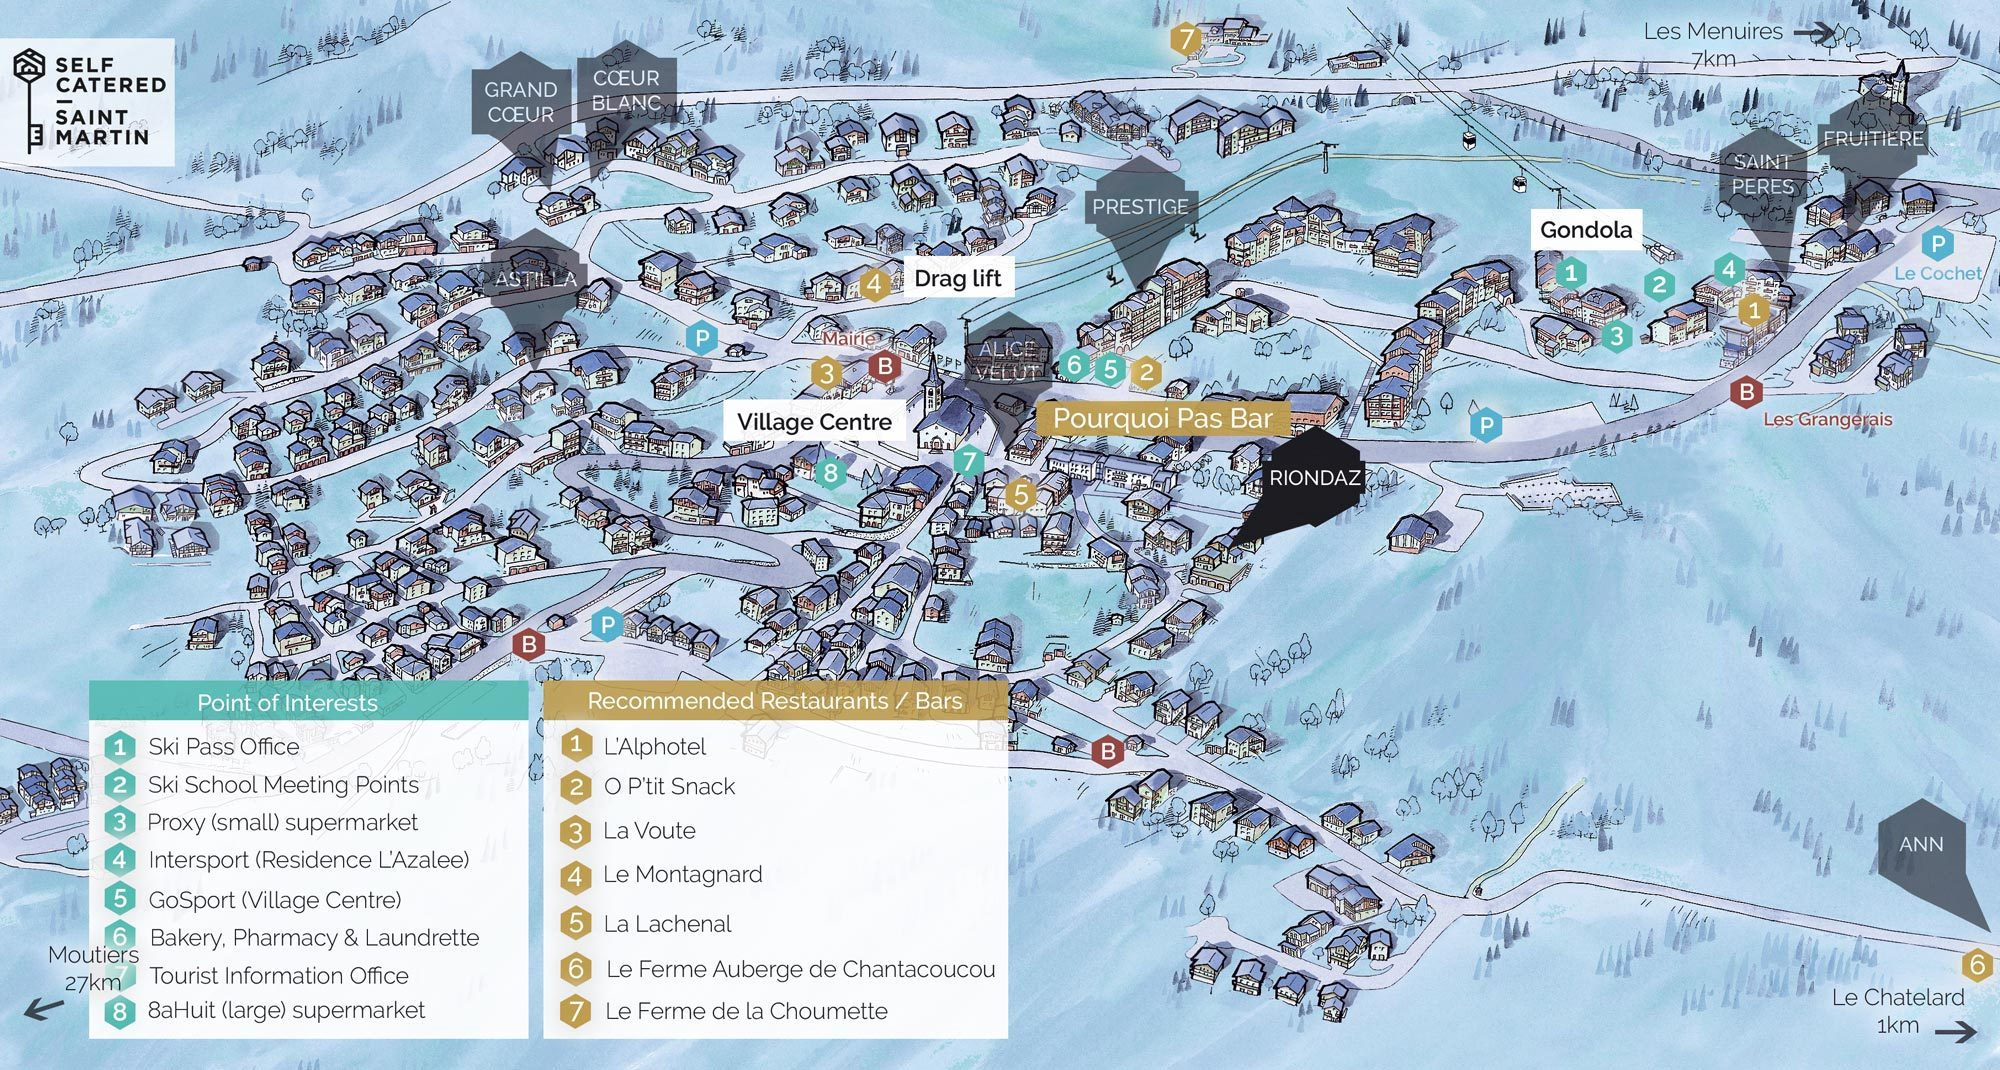 Chalet Riondaz in St Martin de Belleville | Resort Map | Self Catered - Saint Martin